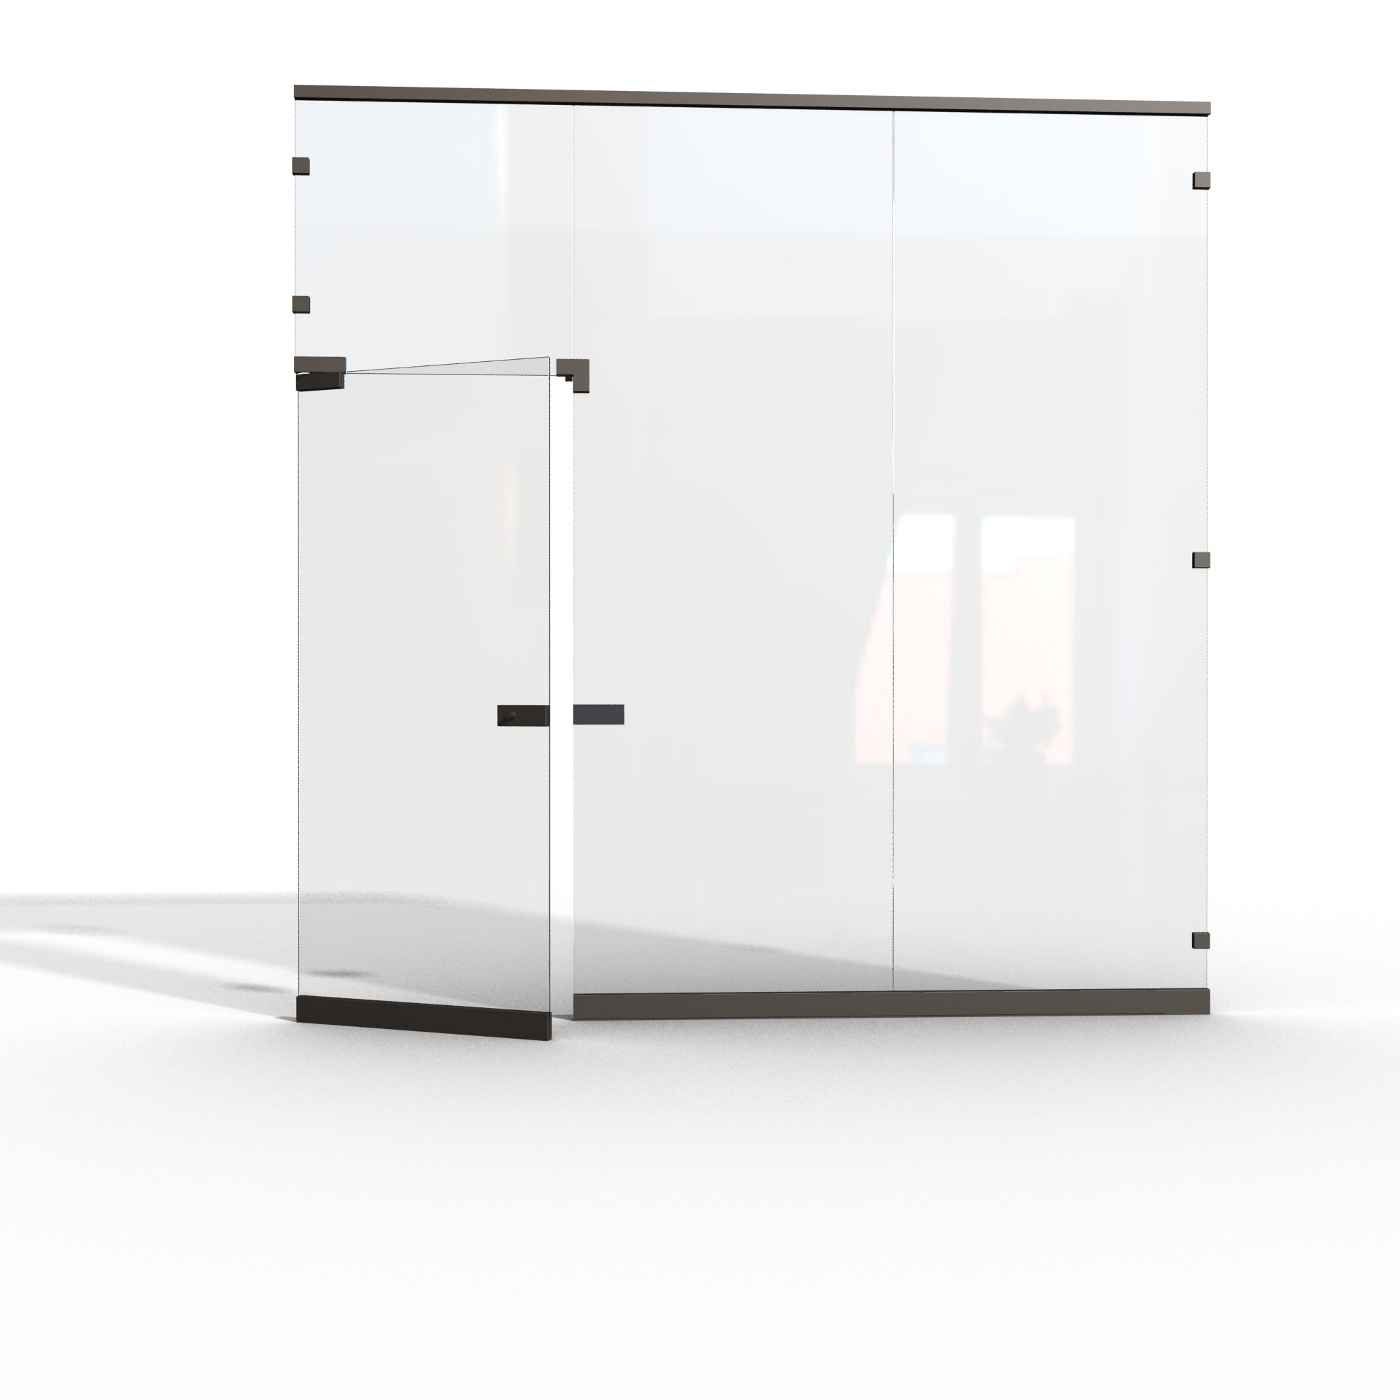 Making Your Working Space Unique And Enjoyable With Office: office partition walls with doors